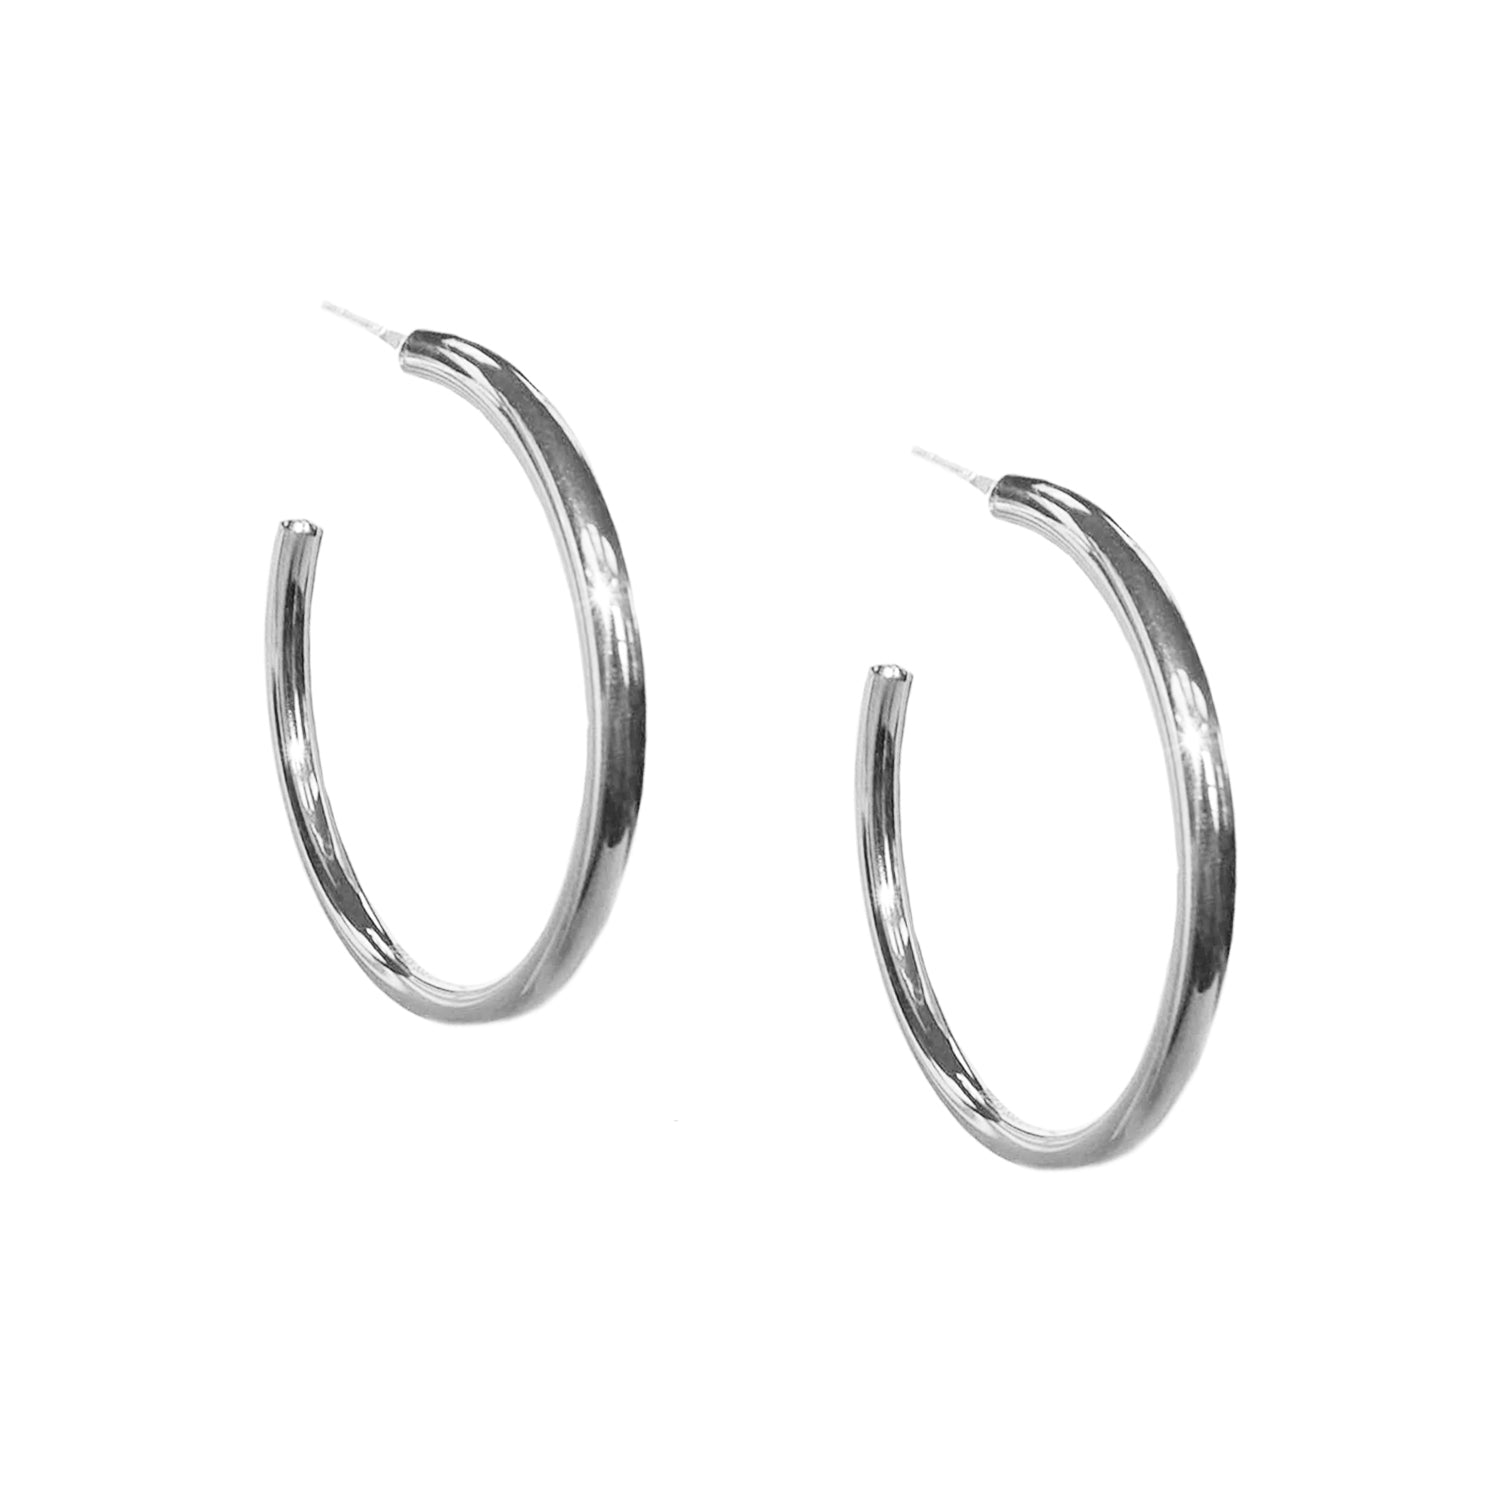 Marlyn Schiff - Stainless Large Hollow Hoop Earring